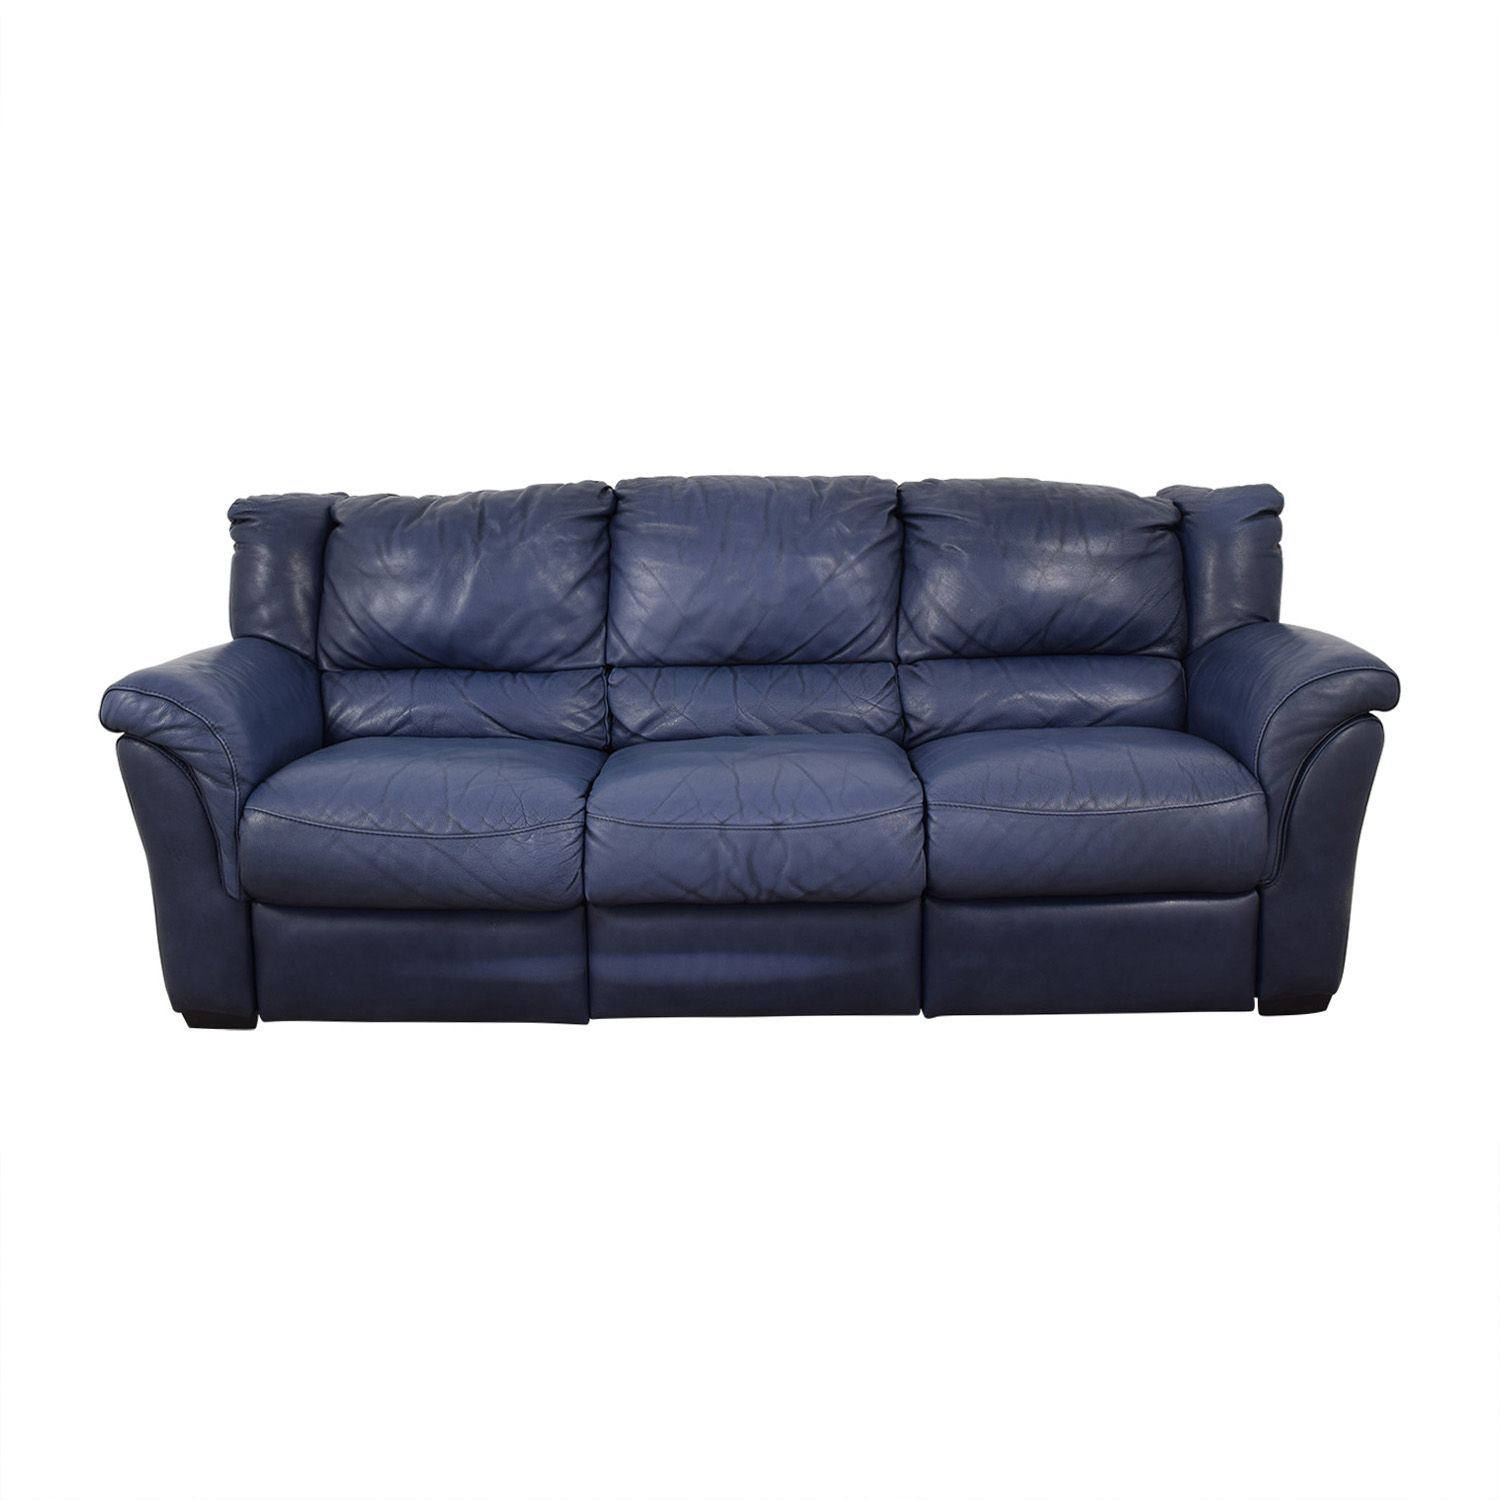 86 Off Chateau D Ax Chateau D Ax Blue Three Cushion Reclining Couch Sofas Recliner Couch Classic Sofa Sofa Couch